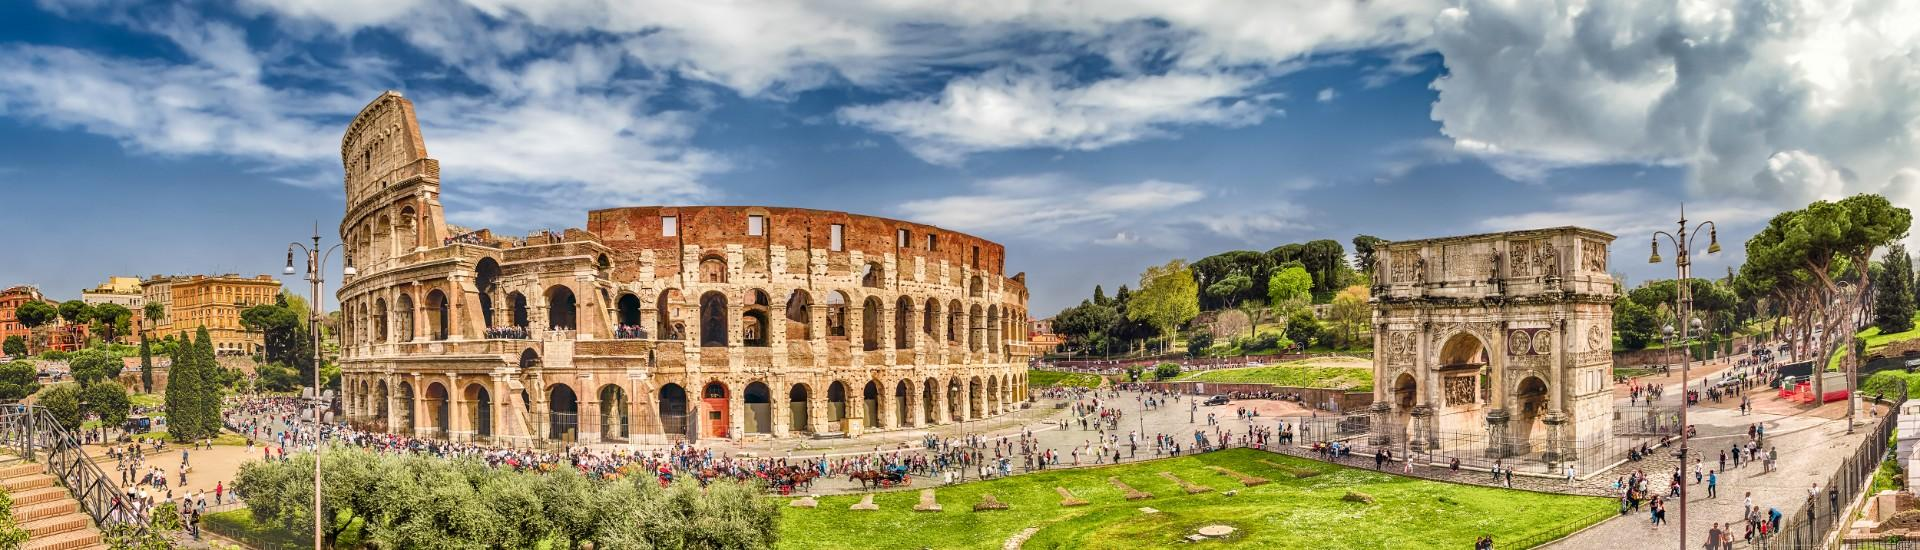 Photo of Colosseum in Rome, Italy